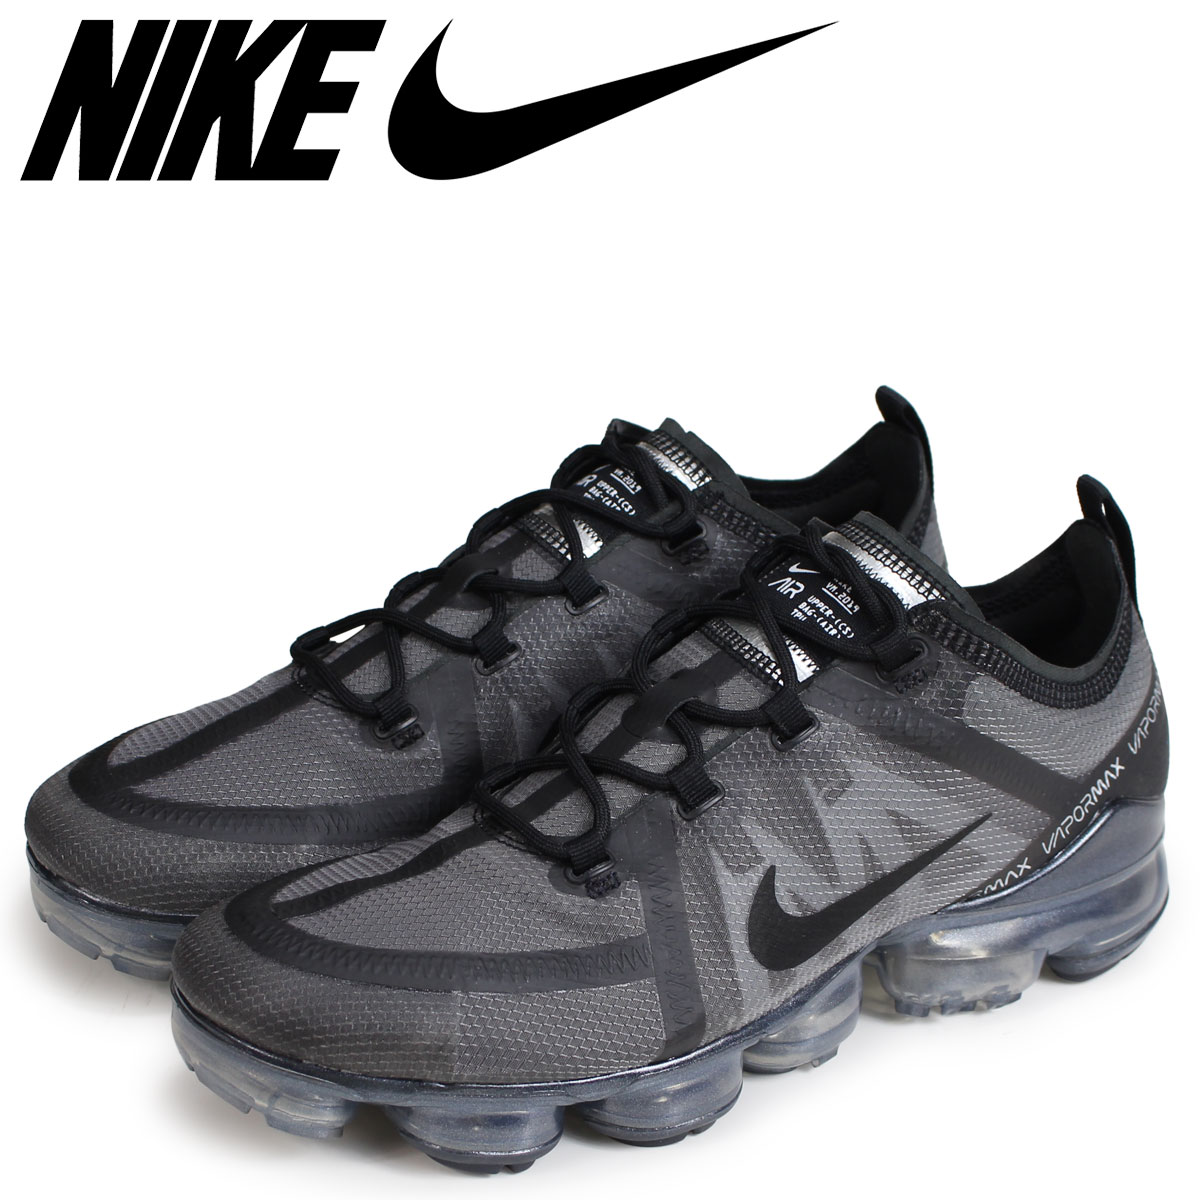 3874dd6961a078 NIKE Nike air vapor max 2019 sneakers men AIR VAPORMAX 2019 black AR6631-004   load planned Shinnyu load in reservation product 1 30 containing